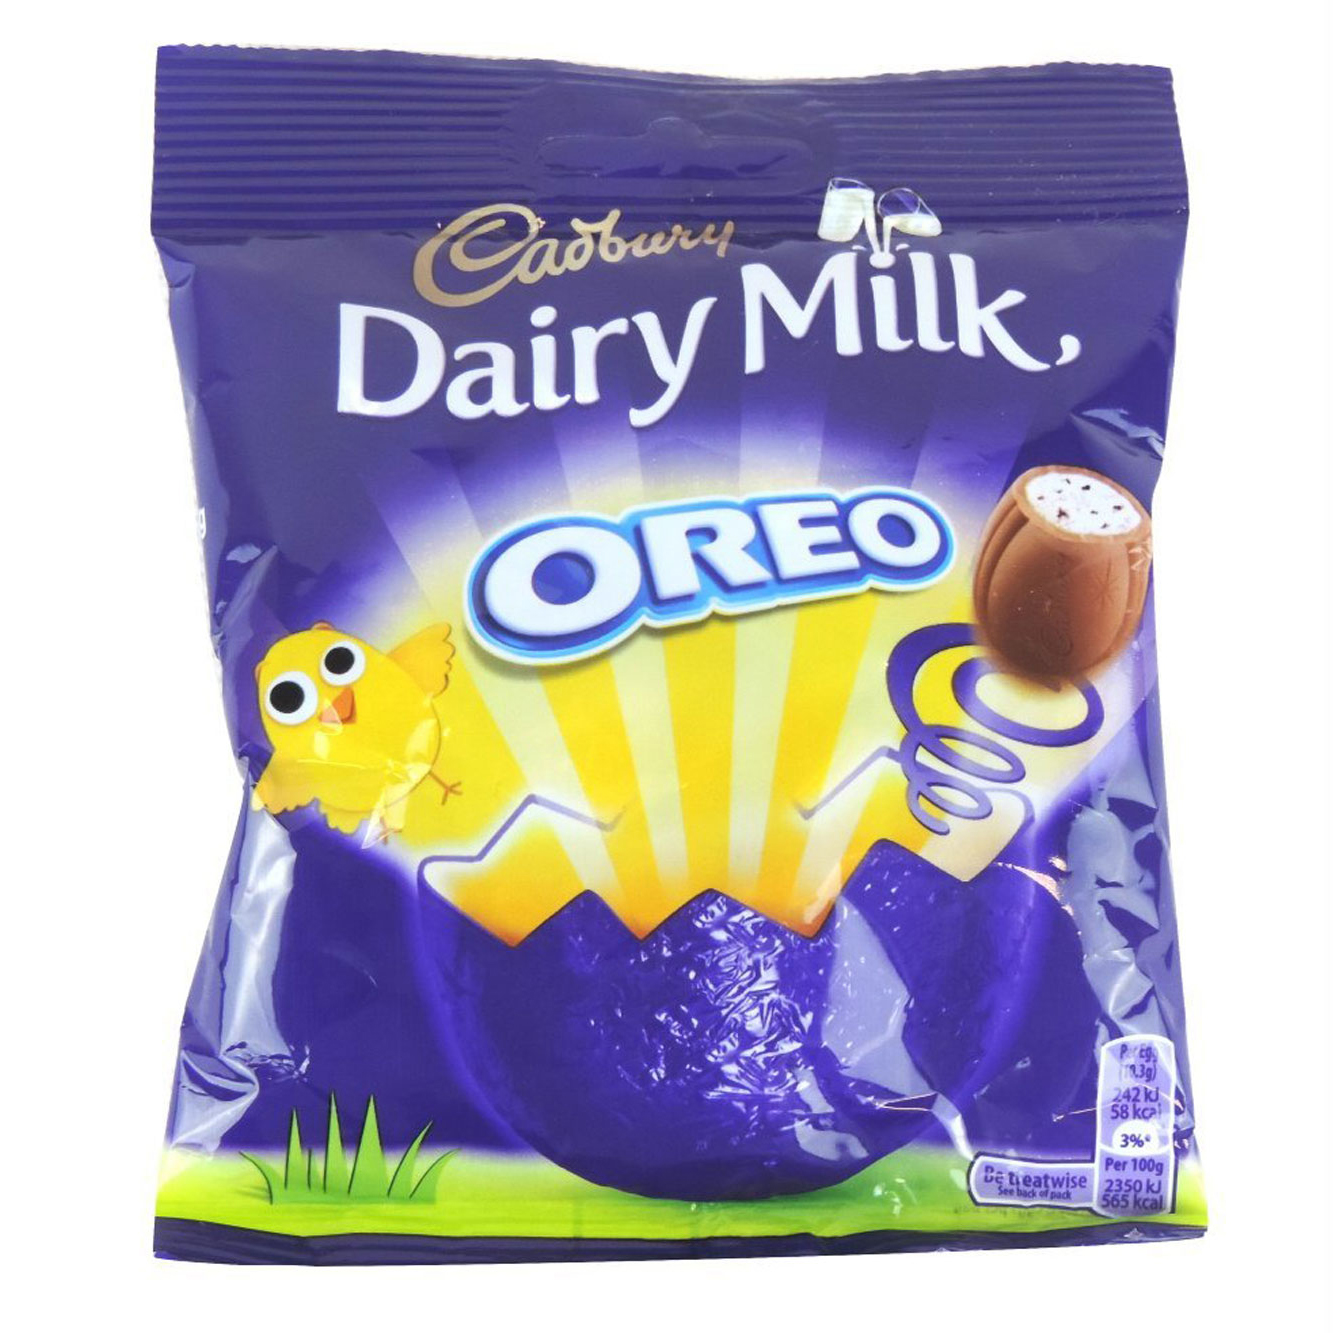 Oreo Cadbury Creme Eggs Are Now a Thing and the Internet Can't Handle It